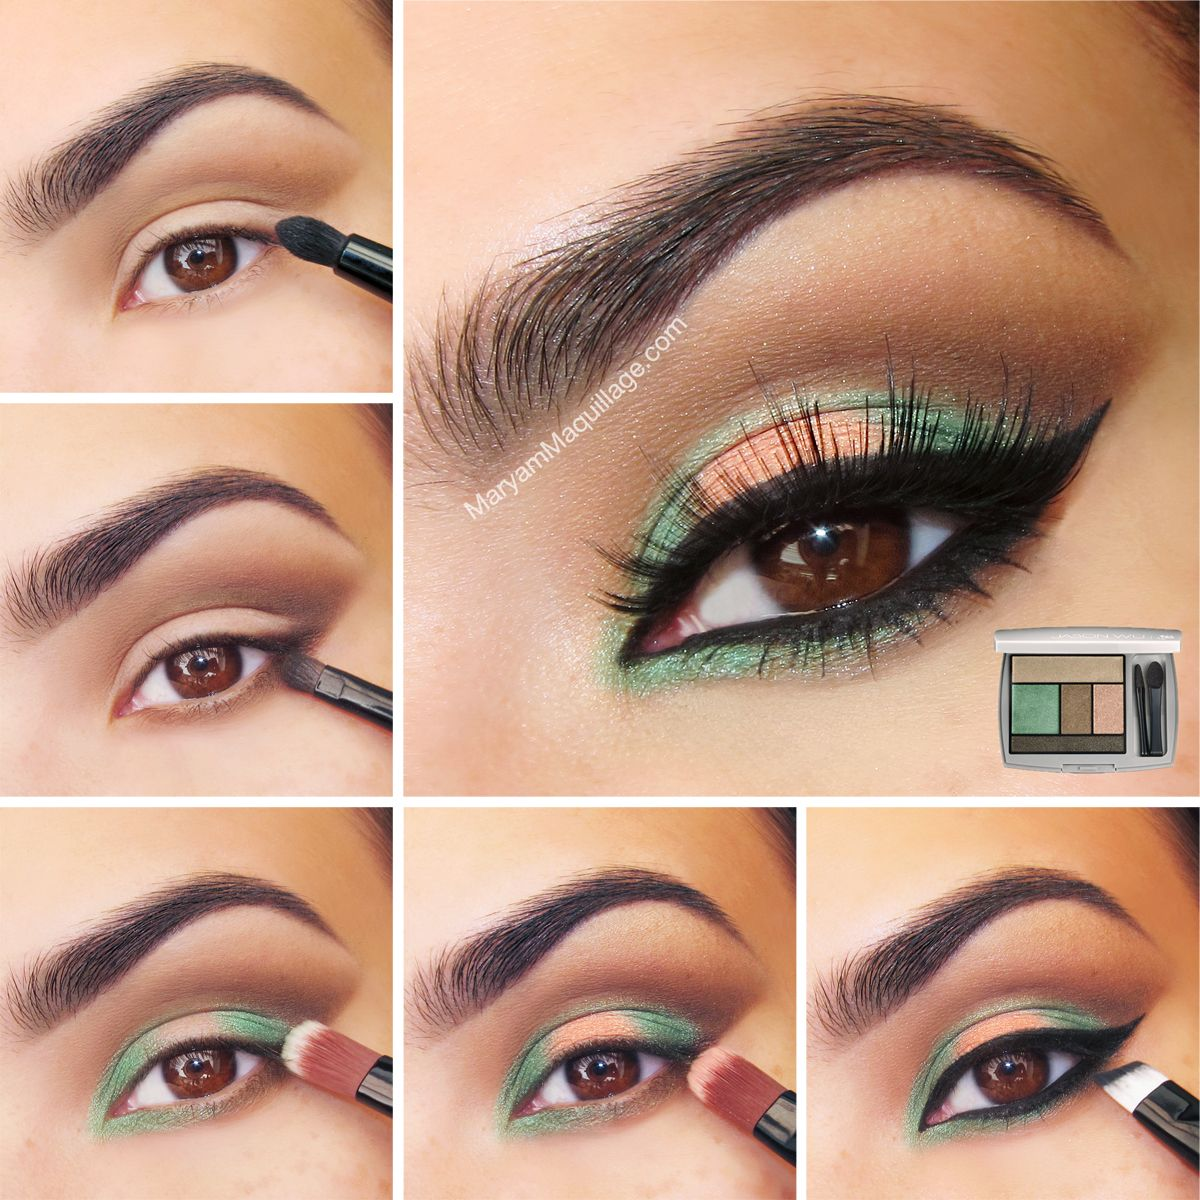 For fashionably fabulous eyes try Maryam's tutorial using